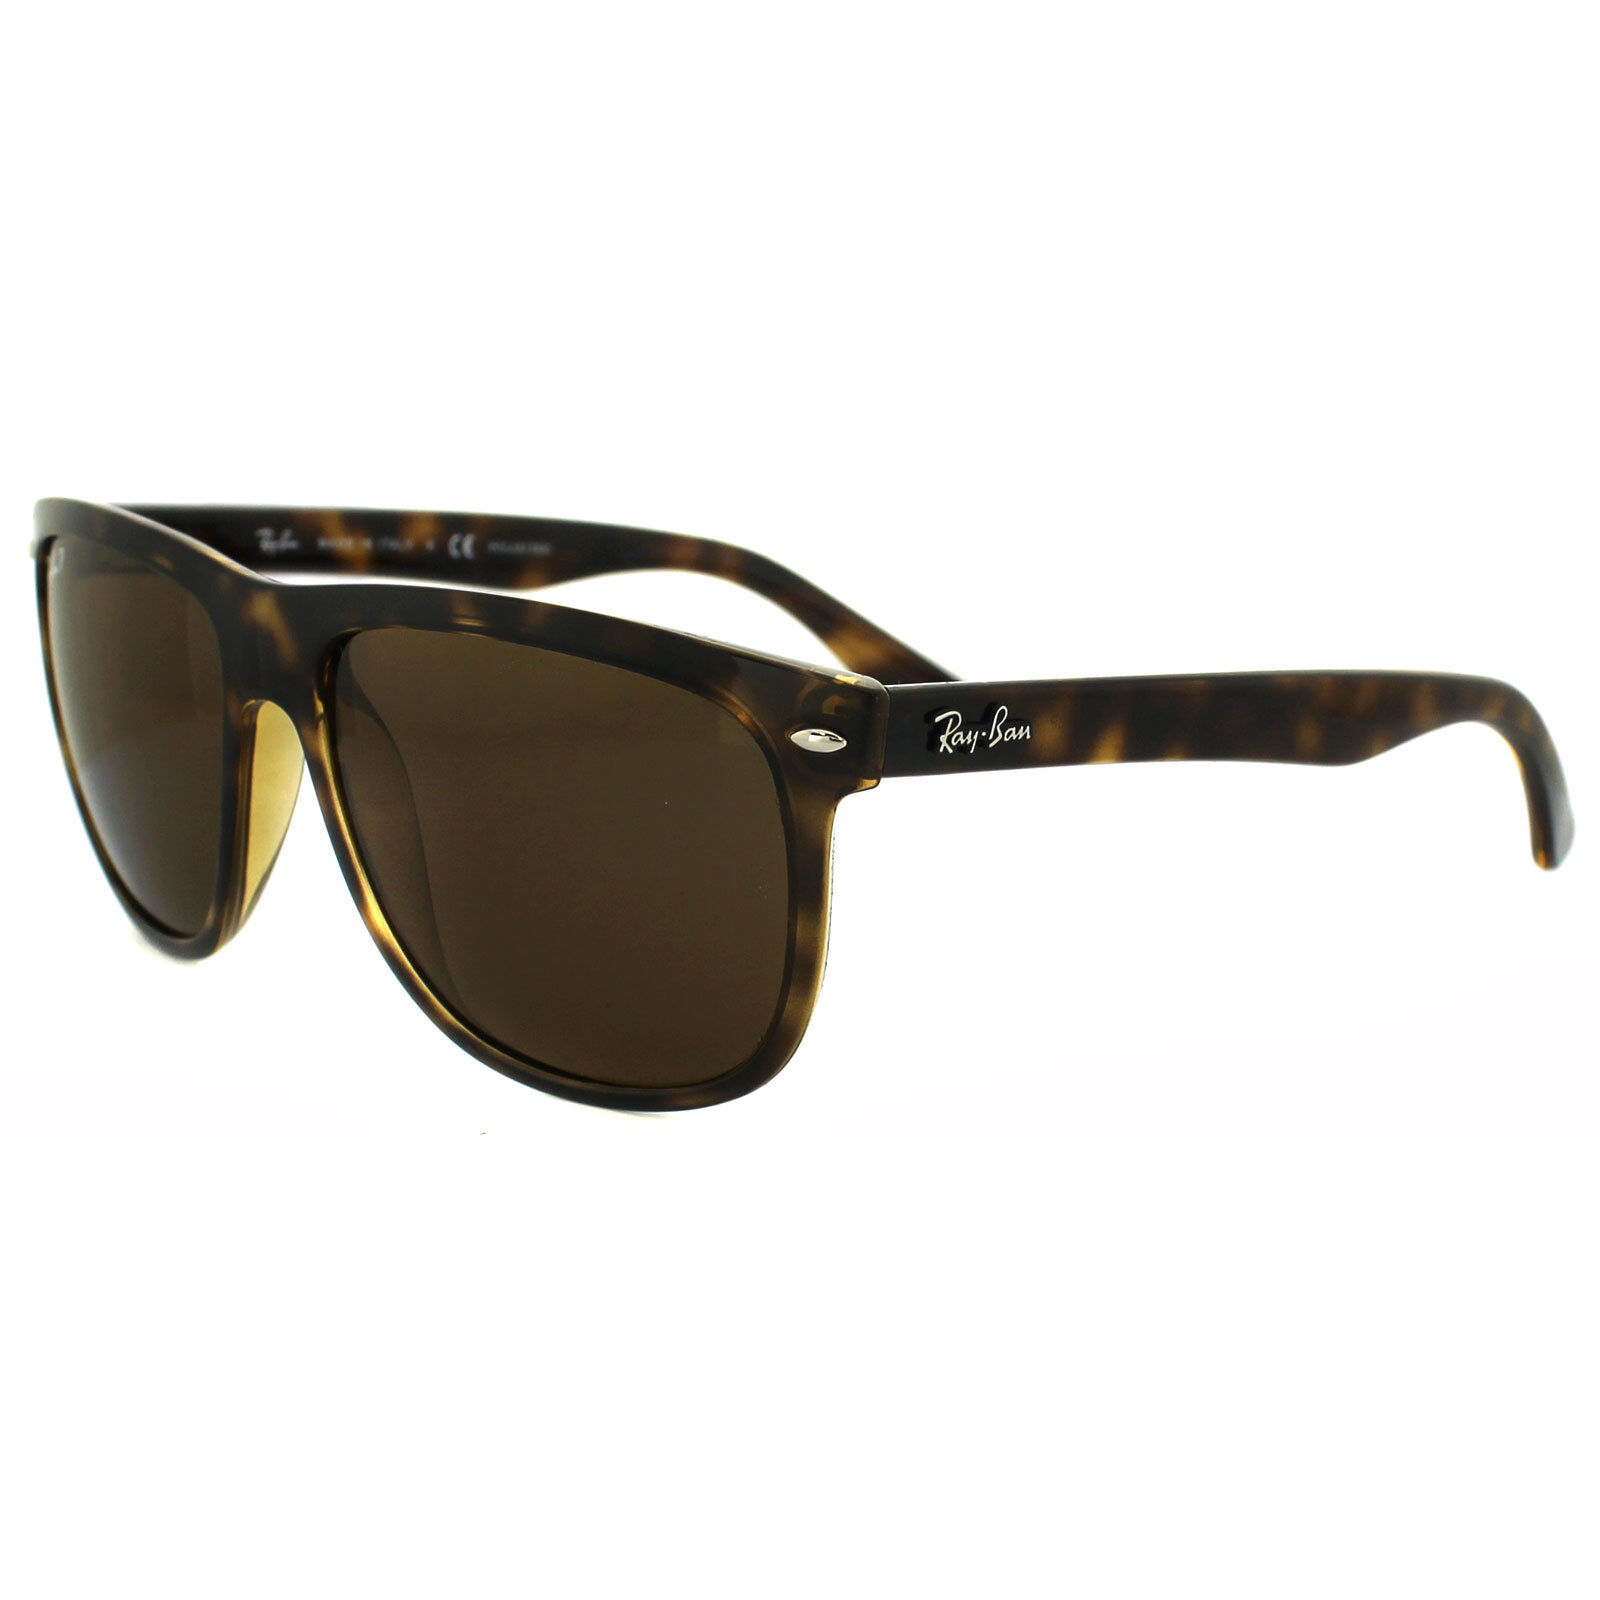 a3d5f82610 ... top quality sunglasses ray ban rb4147 710 57 60 polarized rayban ebay  8b9ca 2db6d